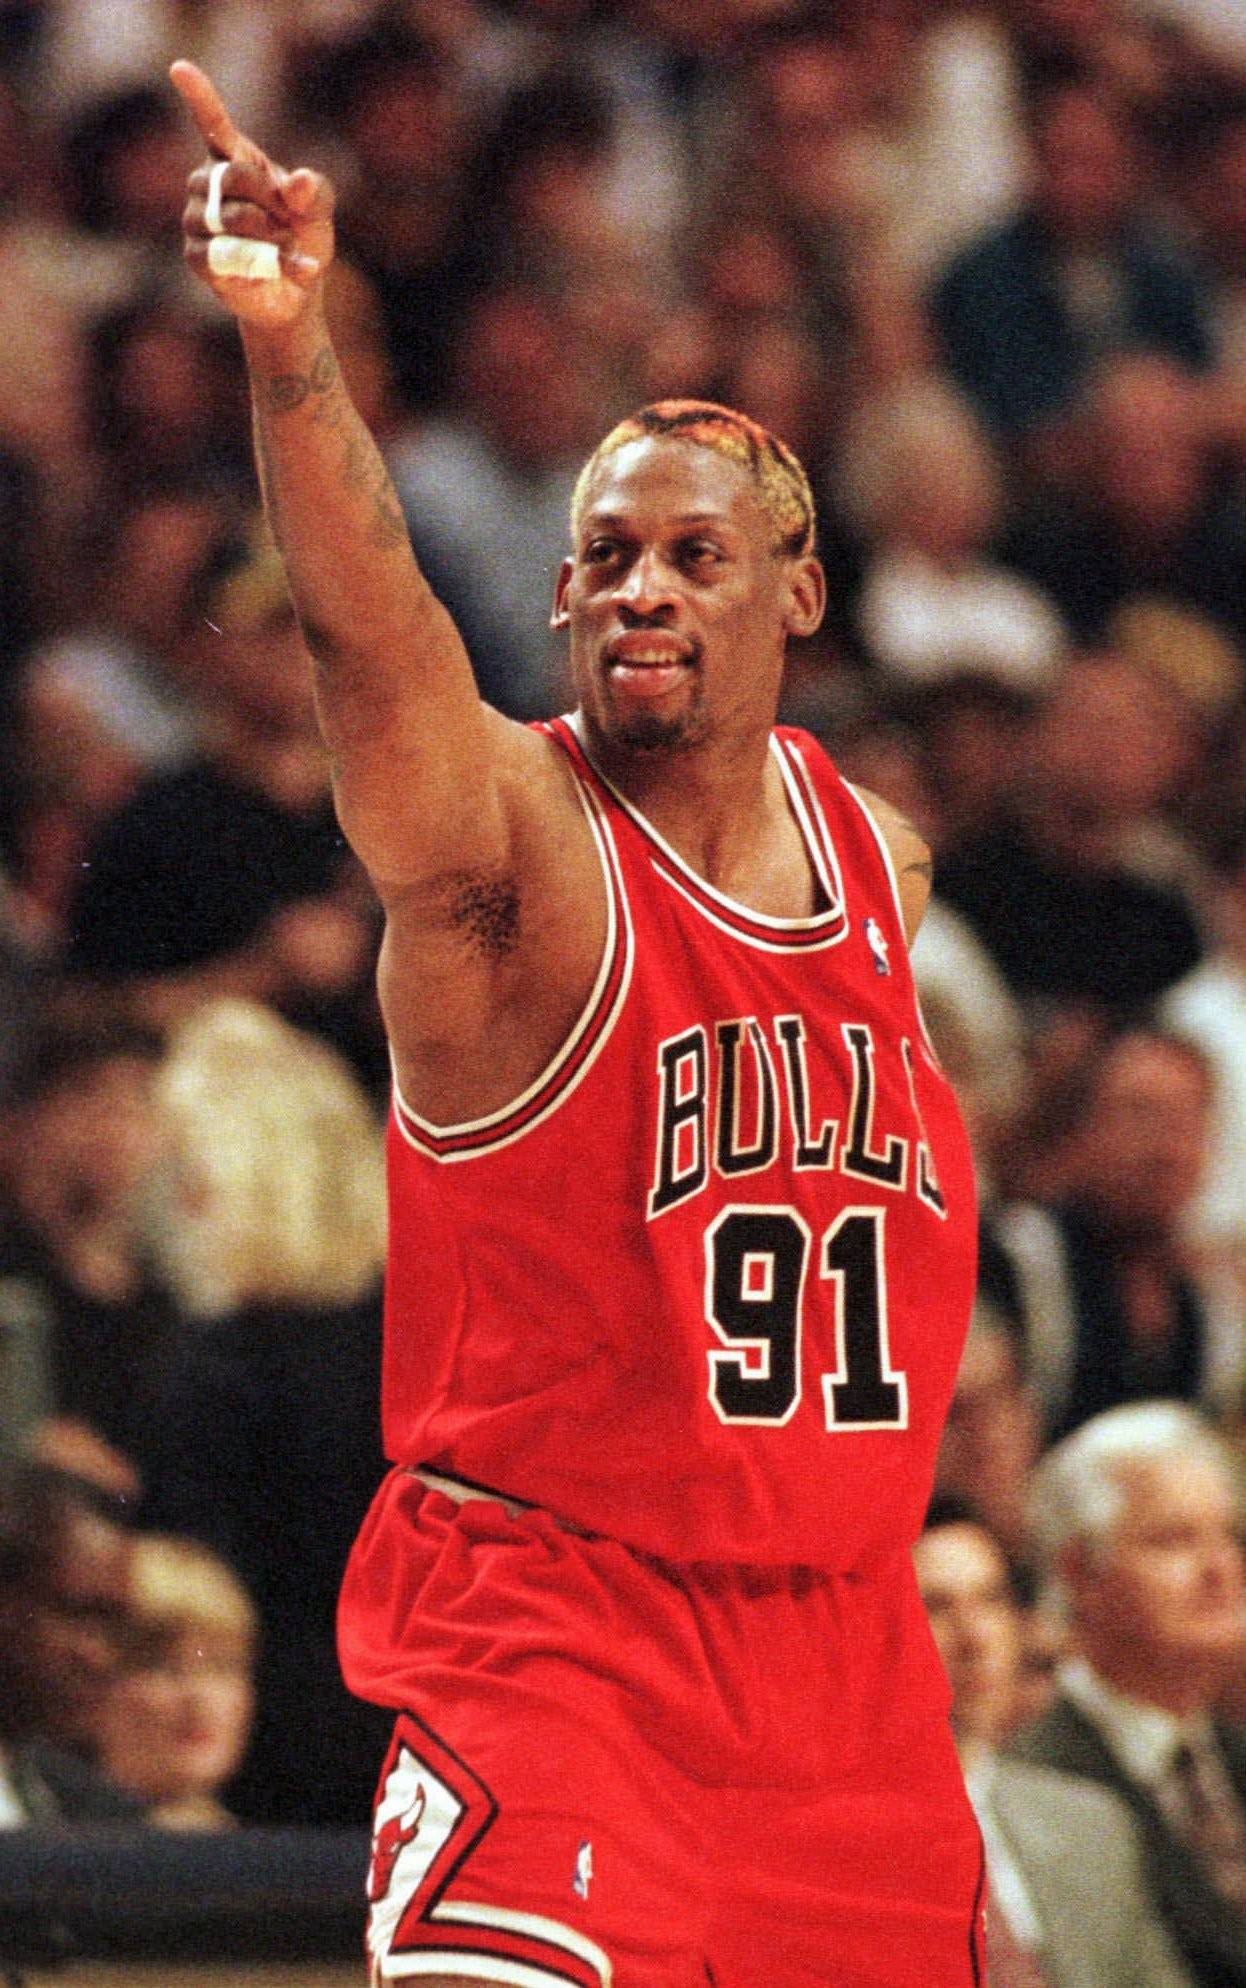 Dennis Rodman spent three of his 14 NBA seasons with the Chicago Bulls.